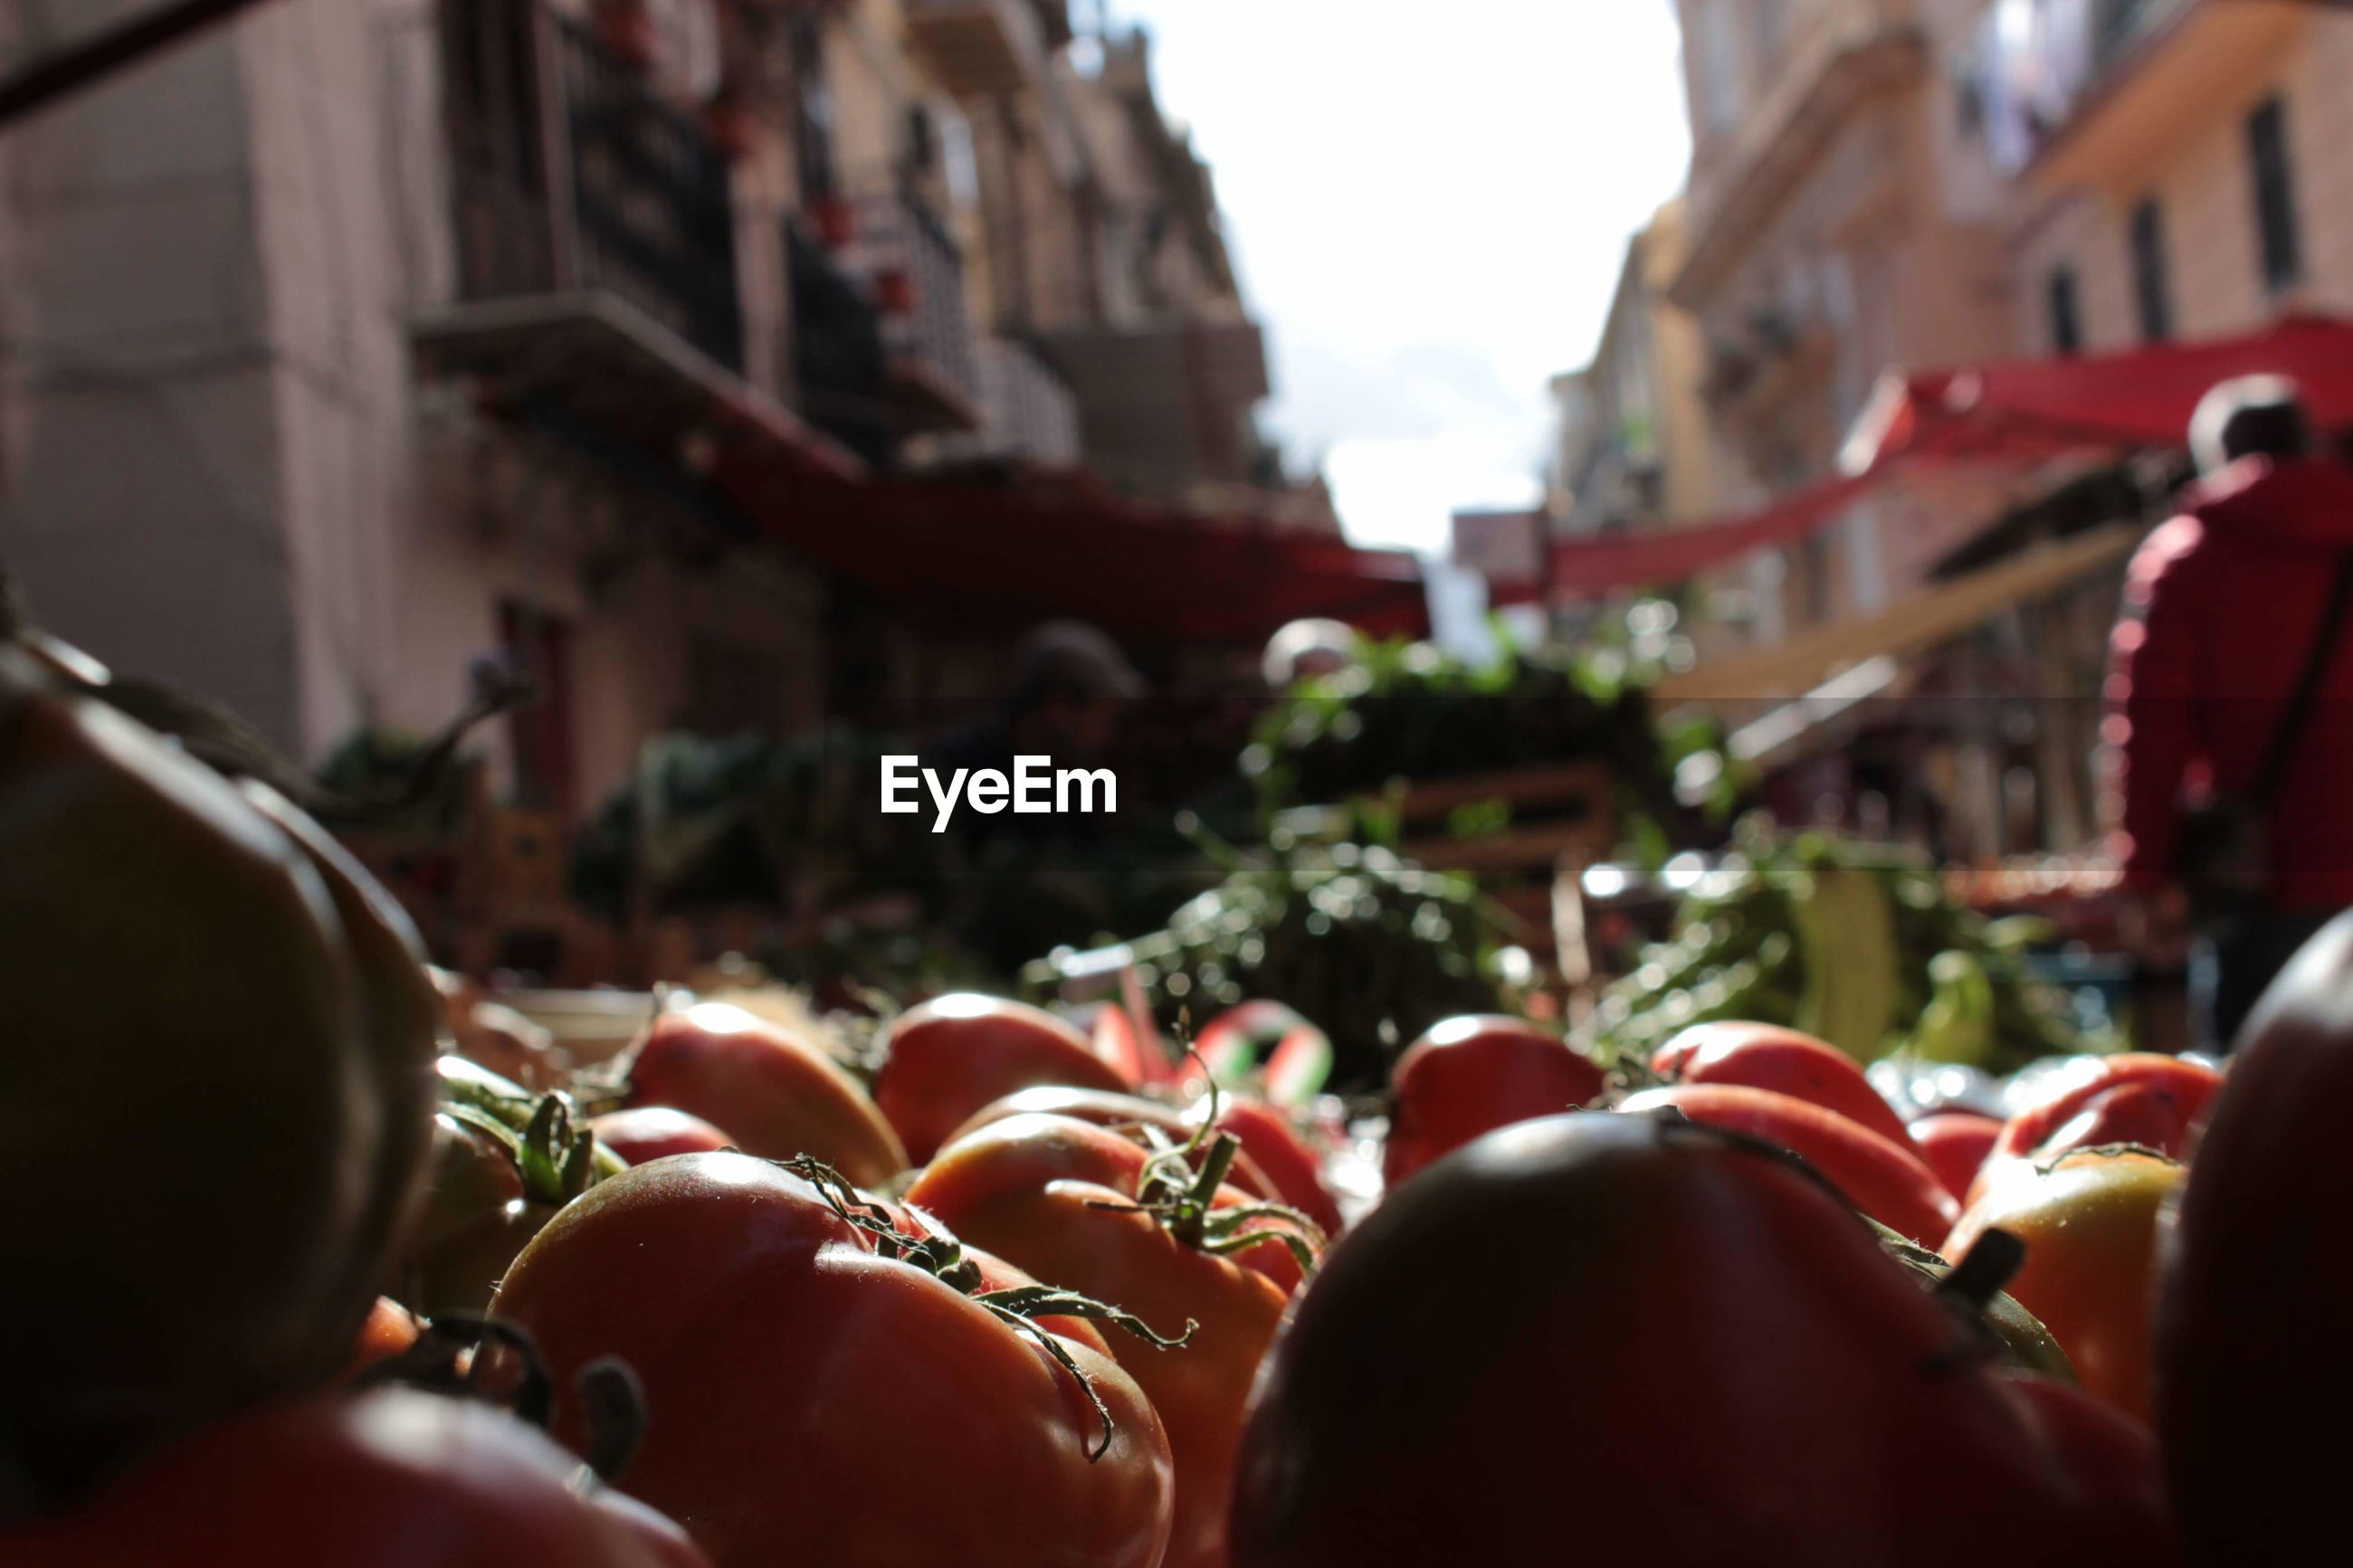 Close-up of tomatoes in market for sale